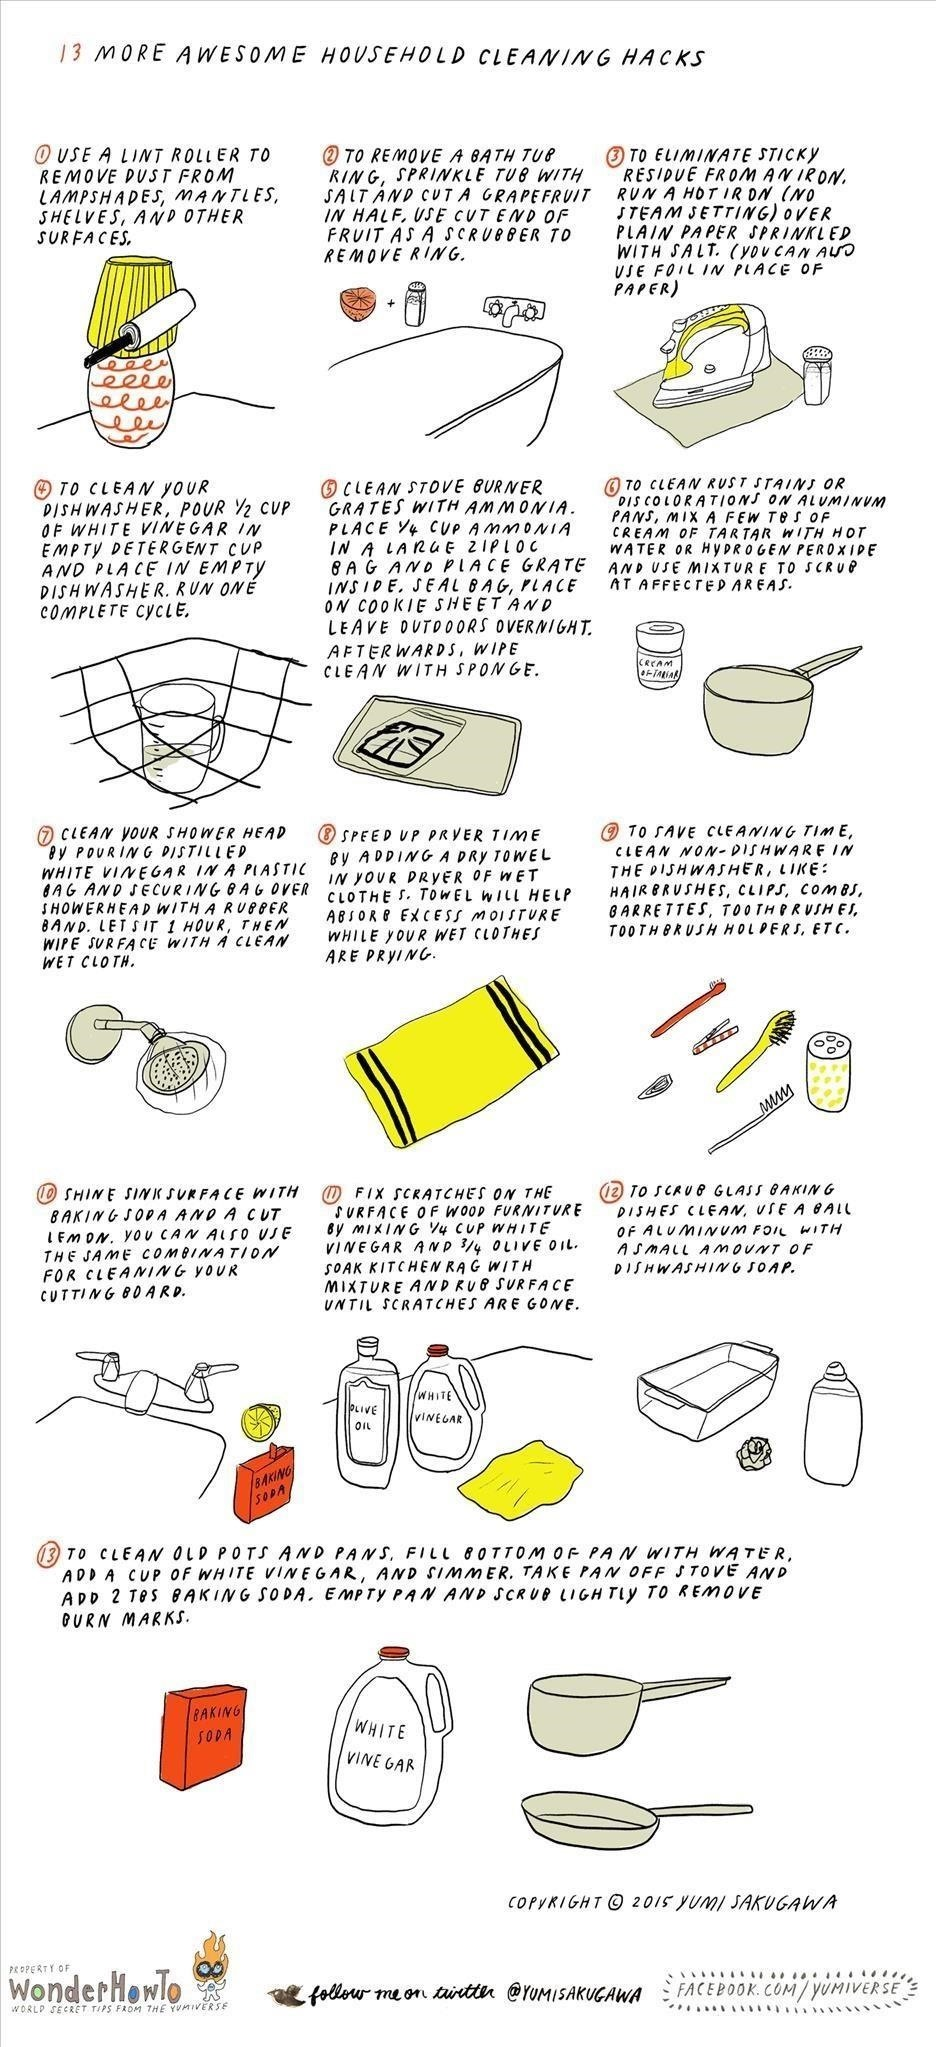 13 More Awesome Household Cleaning Hacks